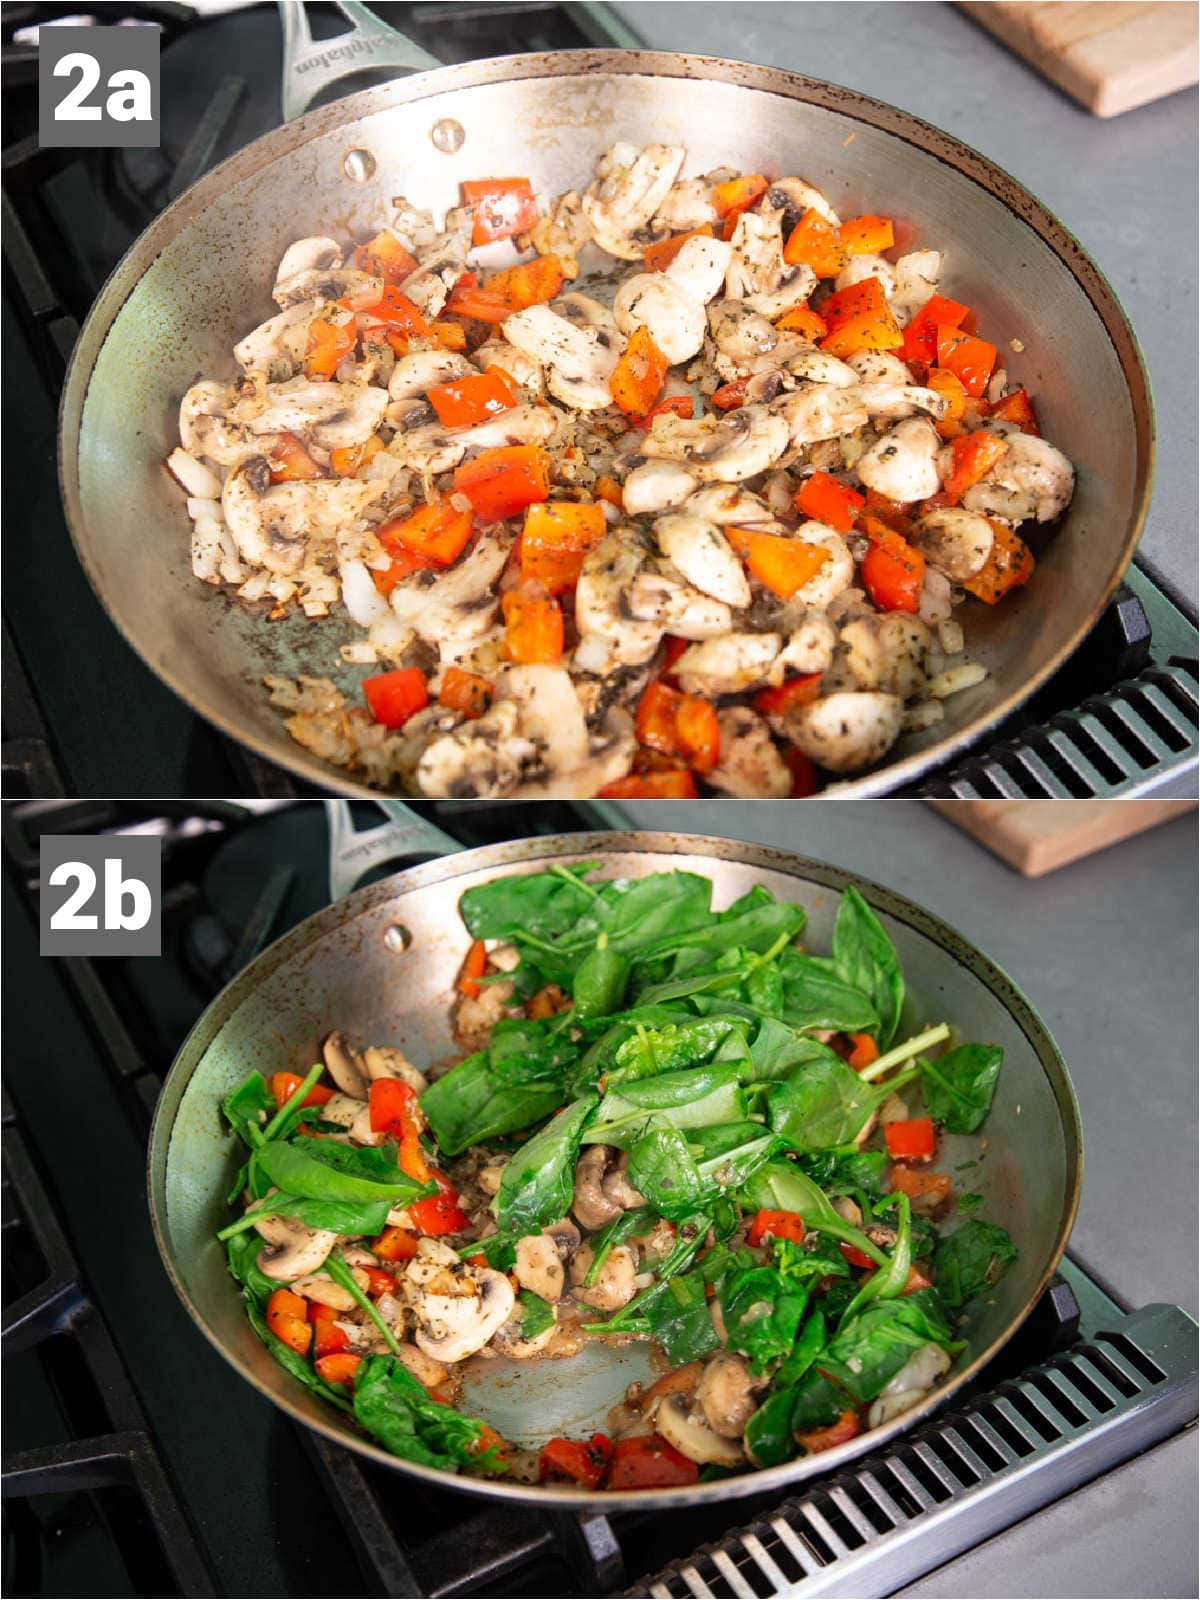 the vegetables cooking in a skillet